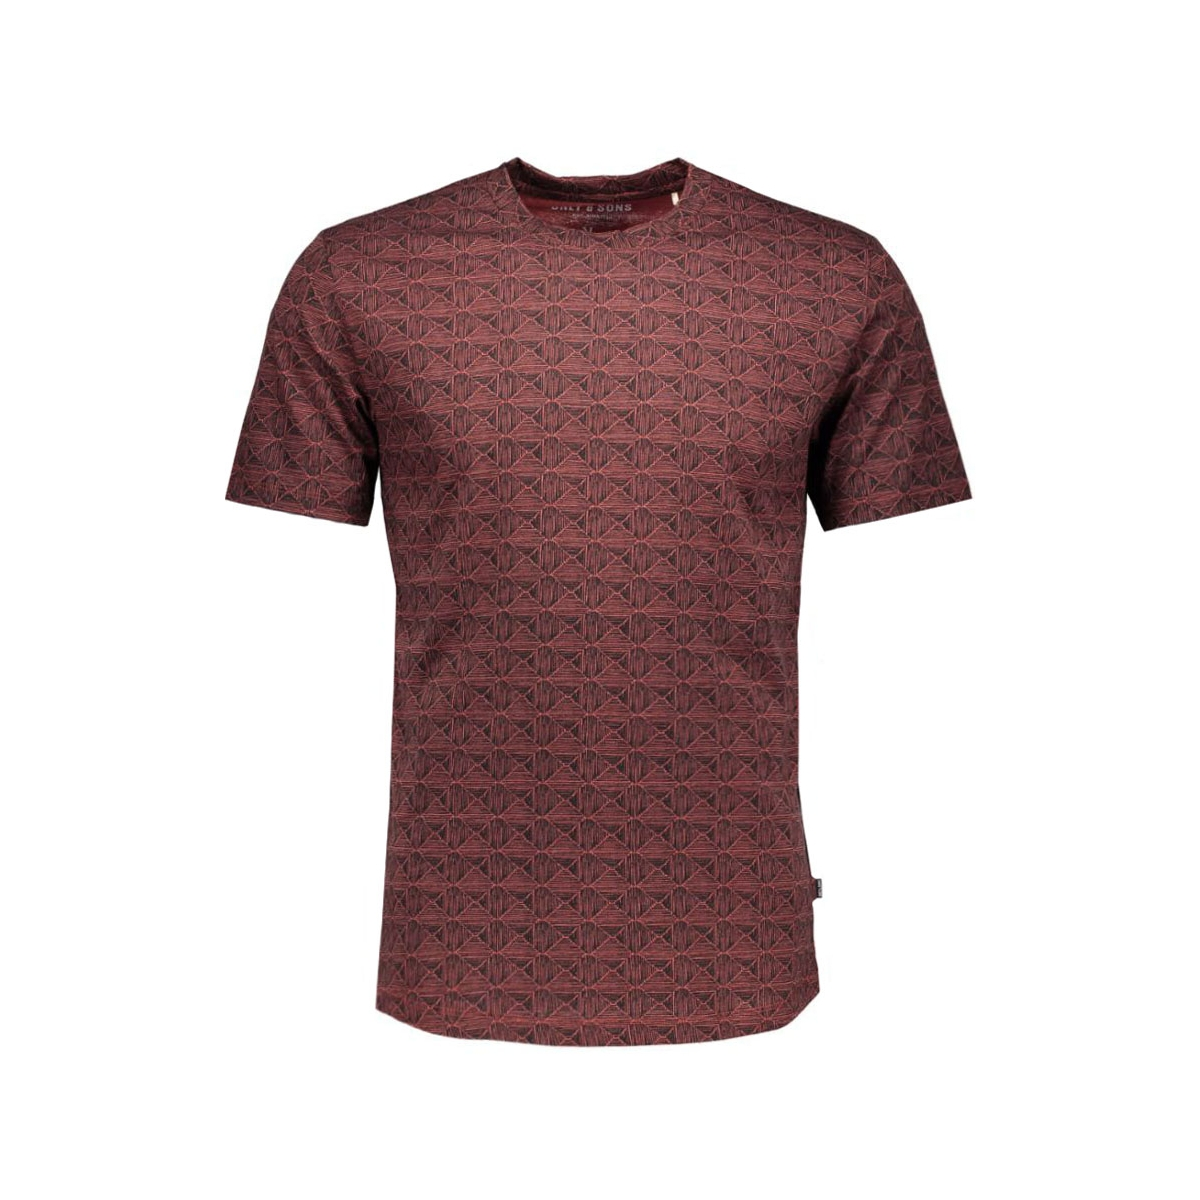 onsnummer fitted tee 22004511 only & sons t-shirt rosewood/melange